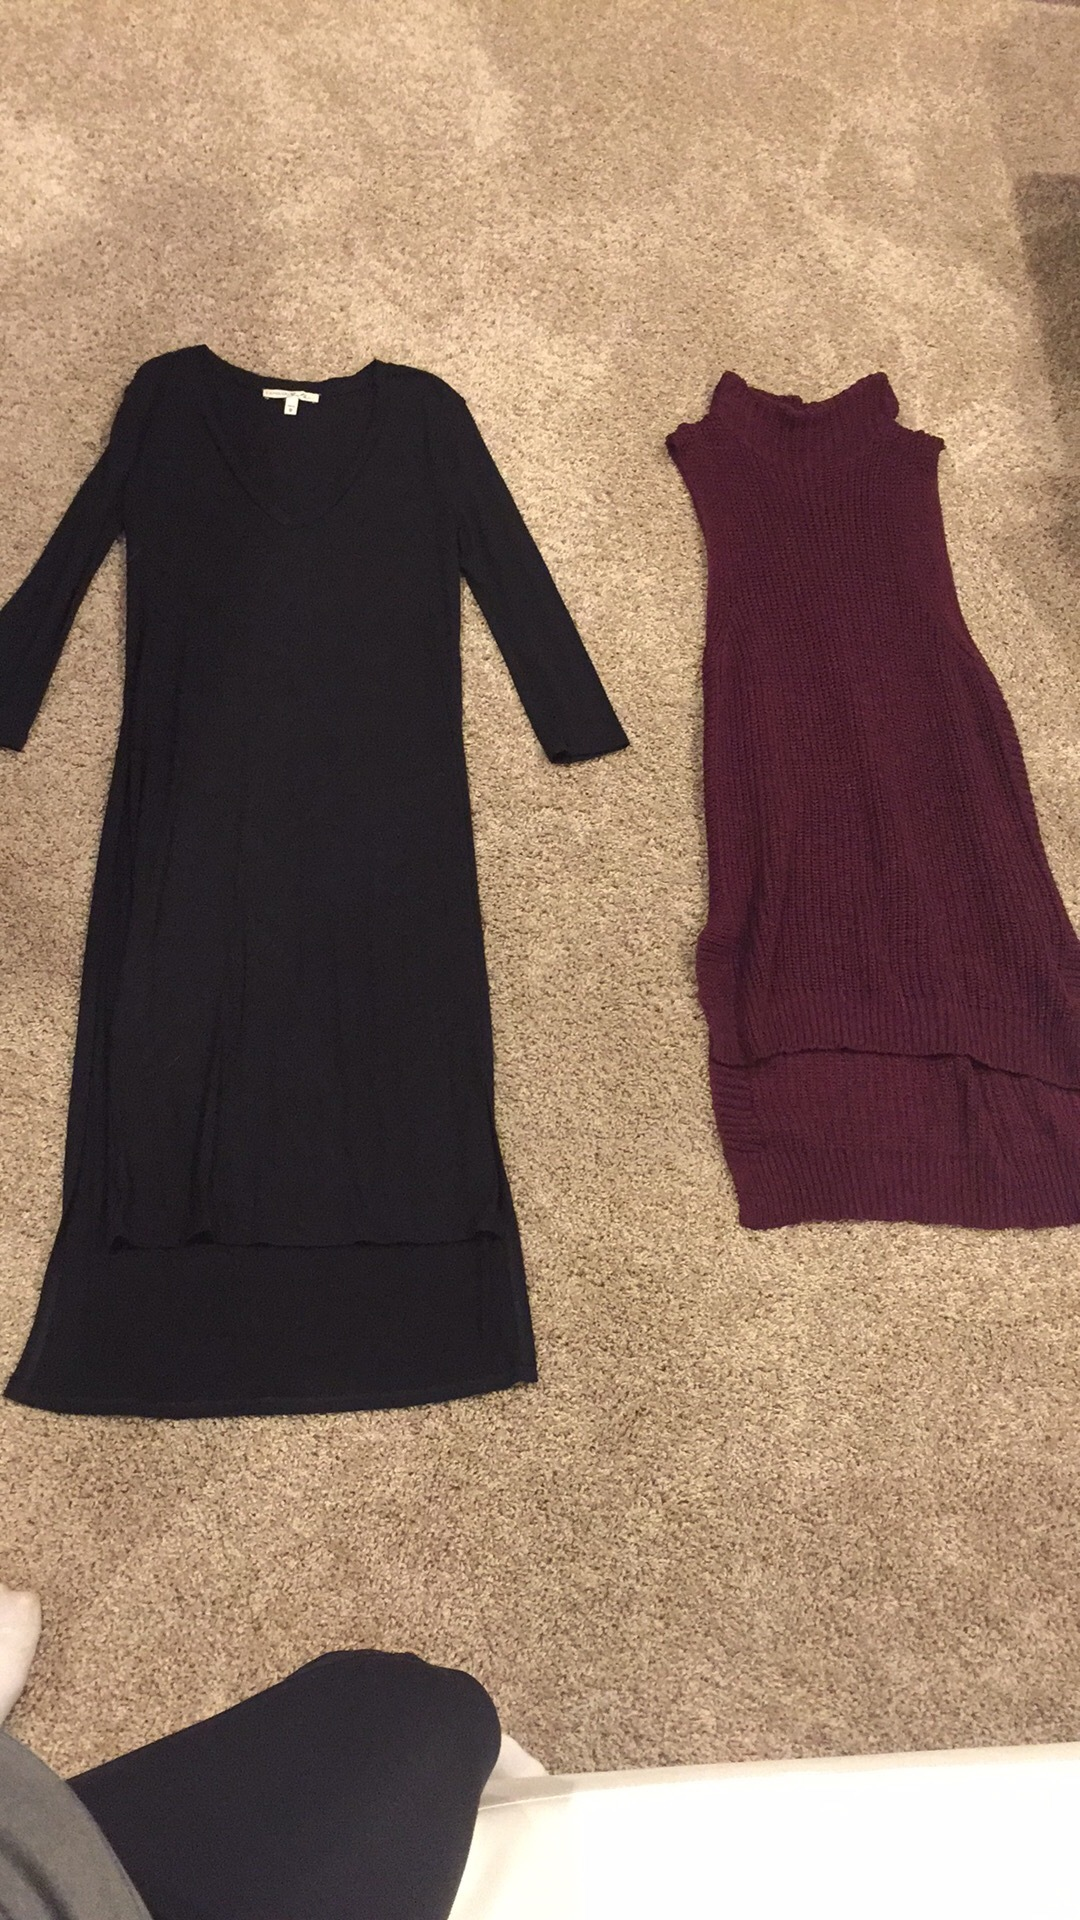 Black t shirt express - Express H M T Shirt Cotton Dress Is Being Swapped Online For Free